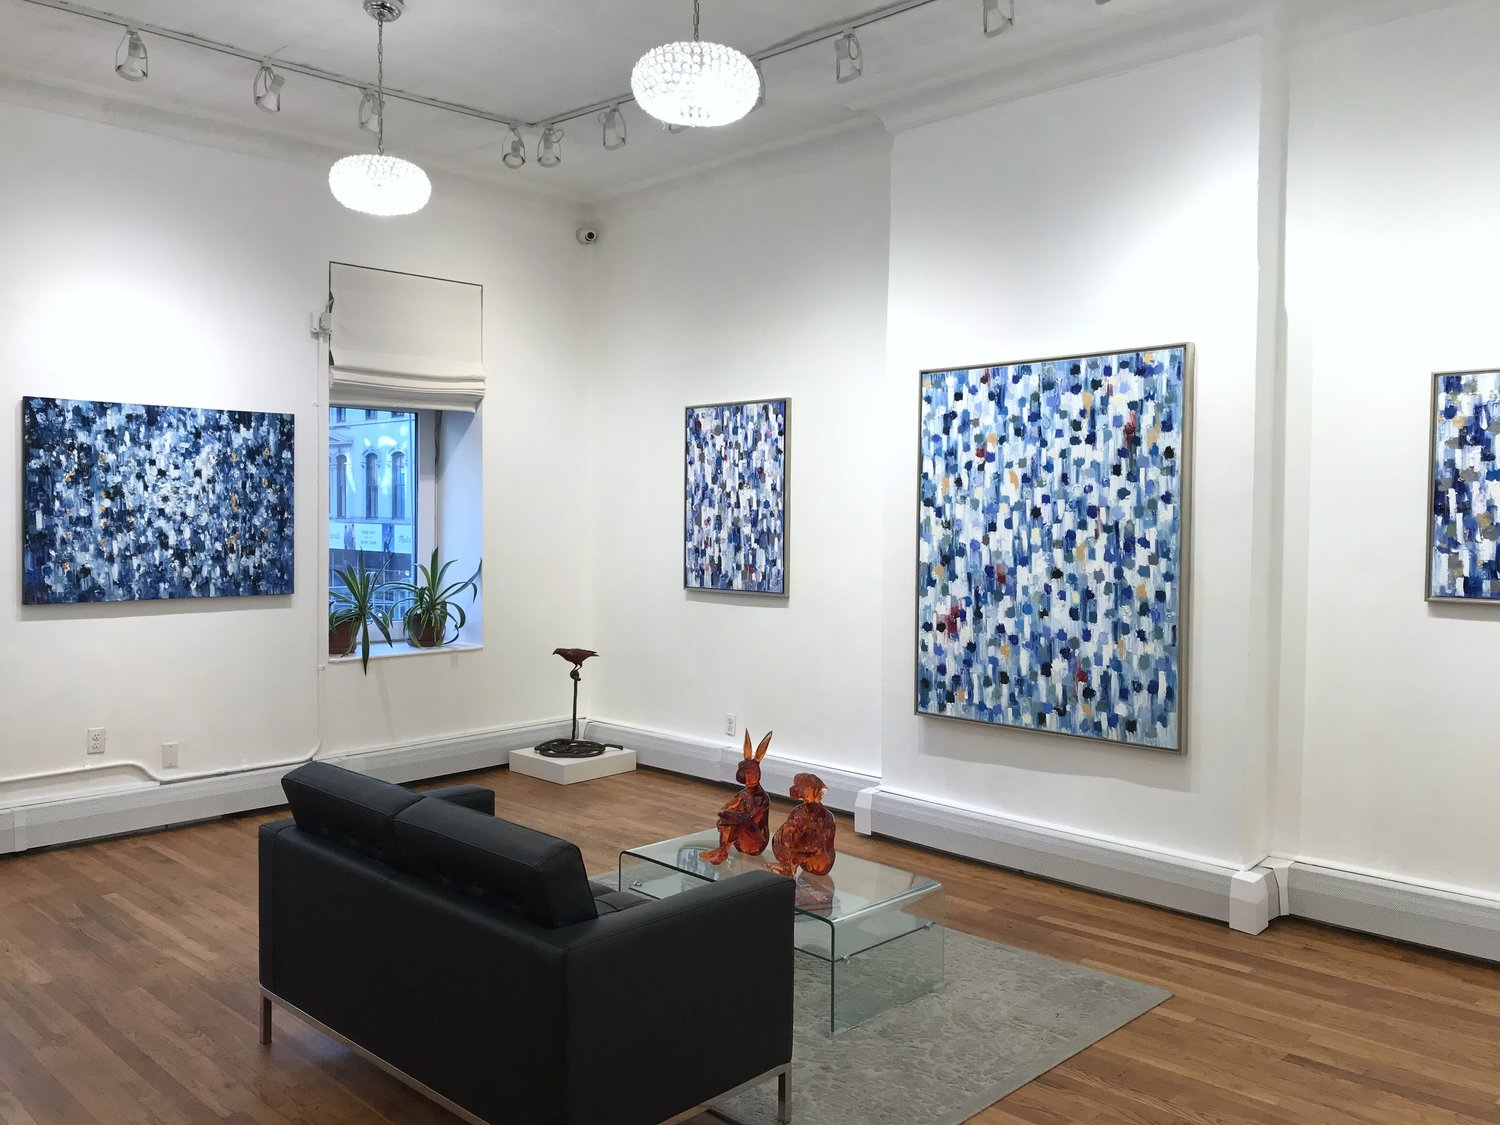 PREVIOUS — Lilac GALLERY